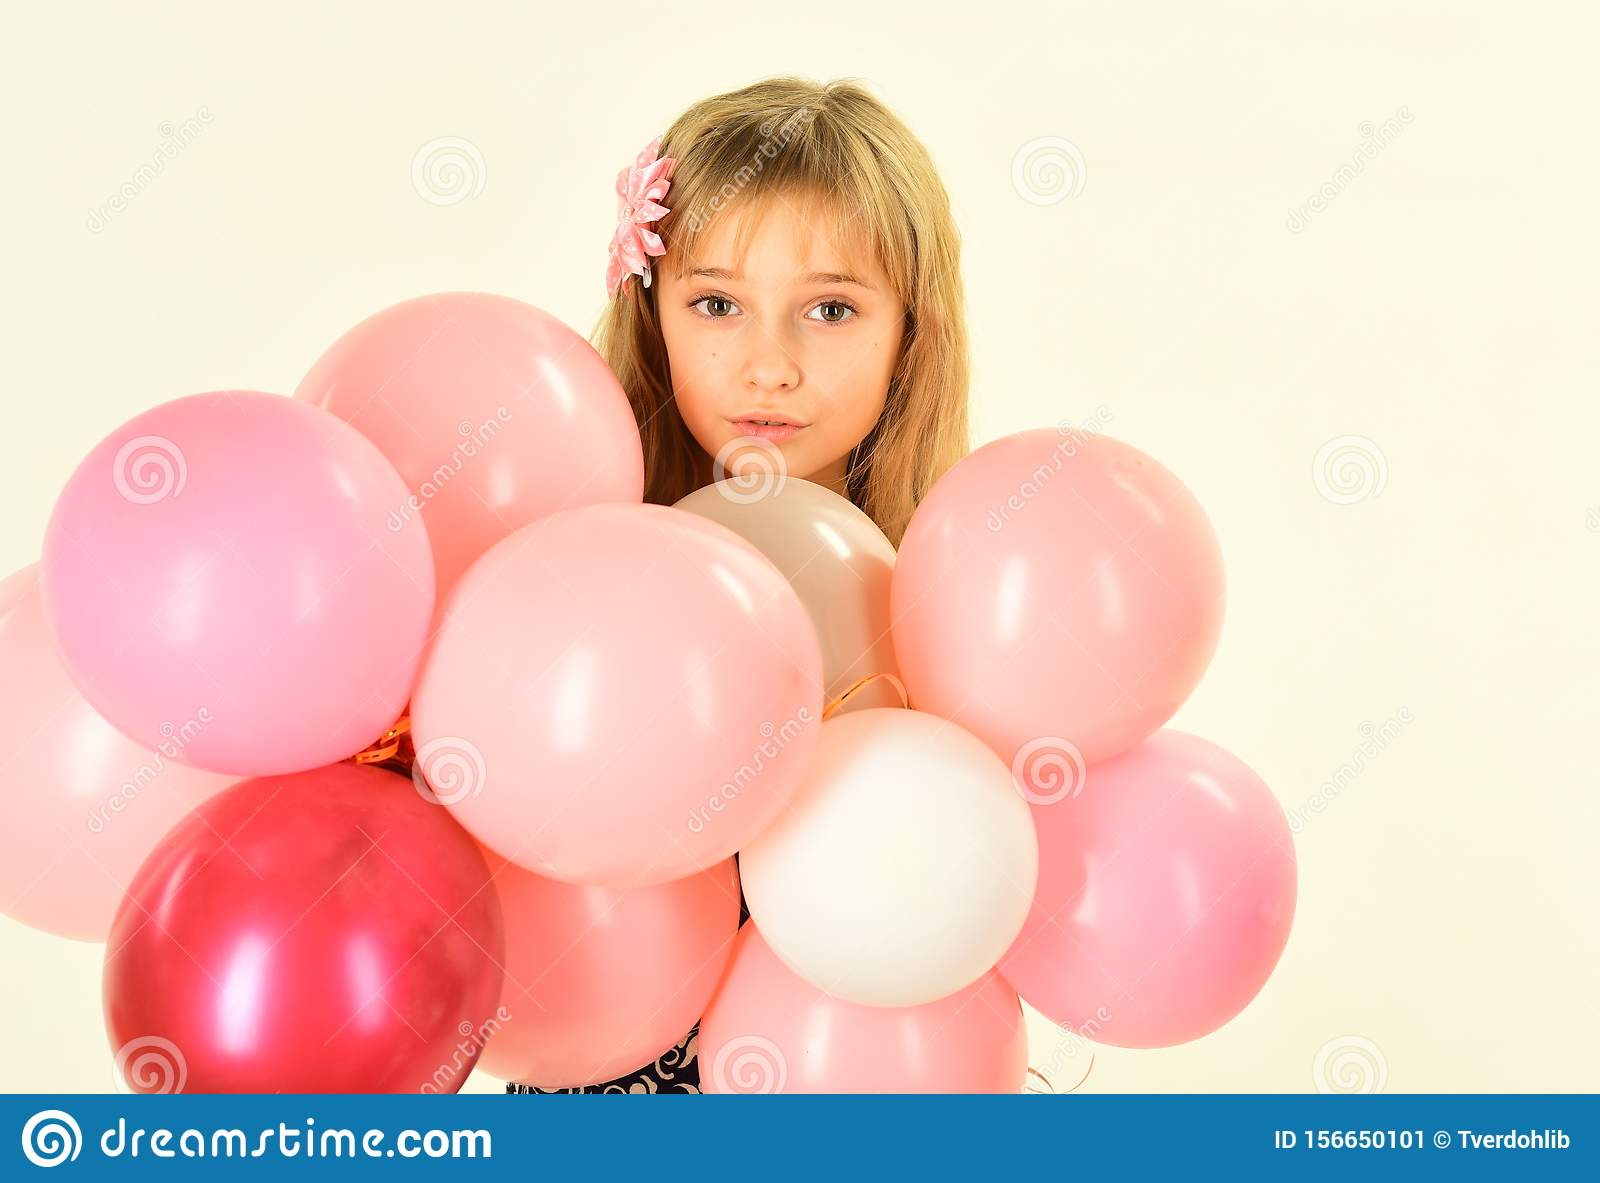 Beauty and fashion, punchy pastels. Little girl with hairstyle hold balloons. Small girl child with party balloons